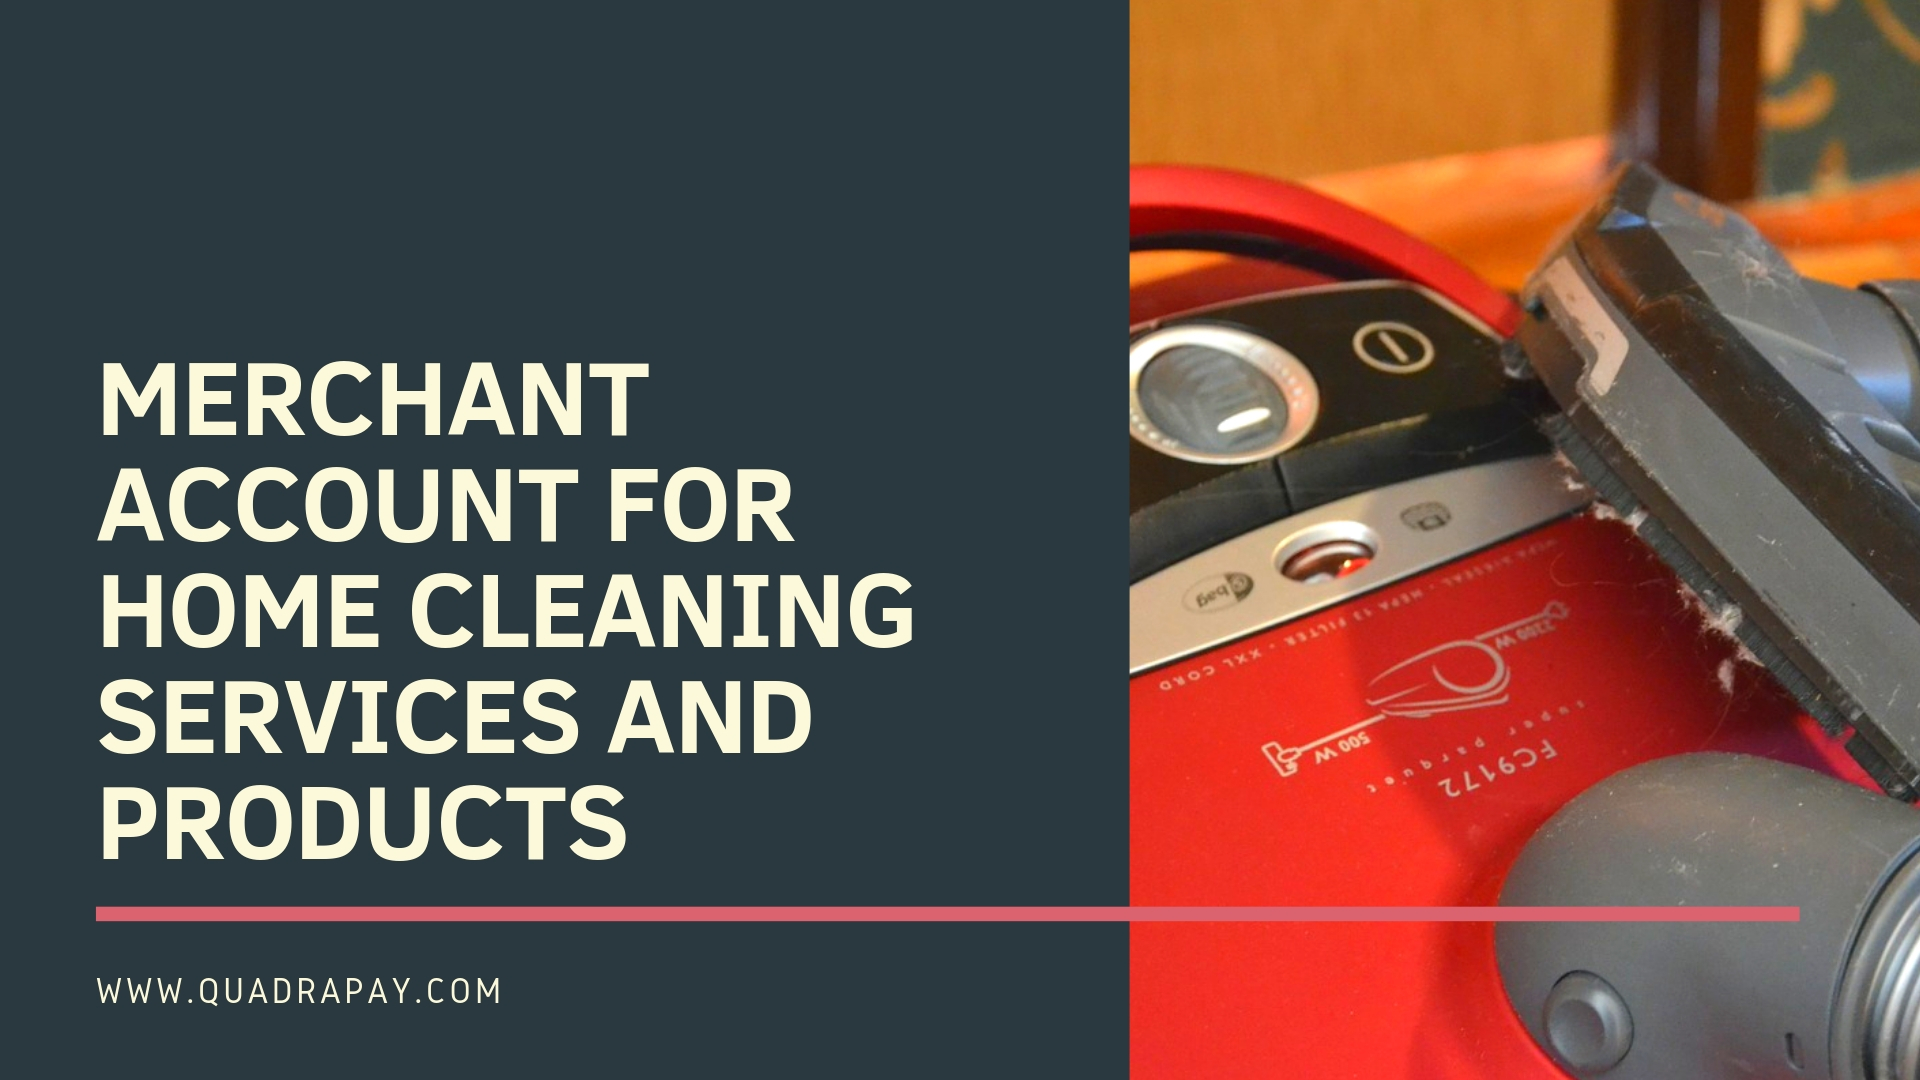 MERCHANT ACCOUNT FOR HOME CLEANING SERVICES AND PRODUCTS